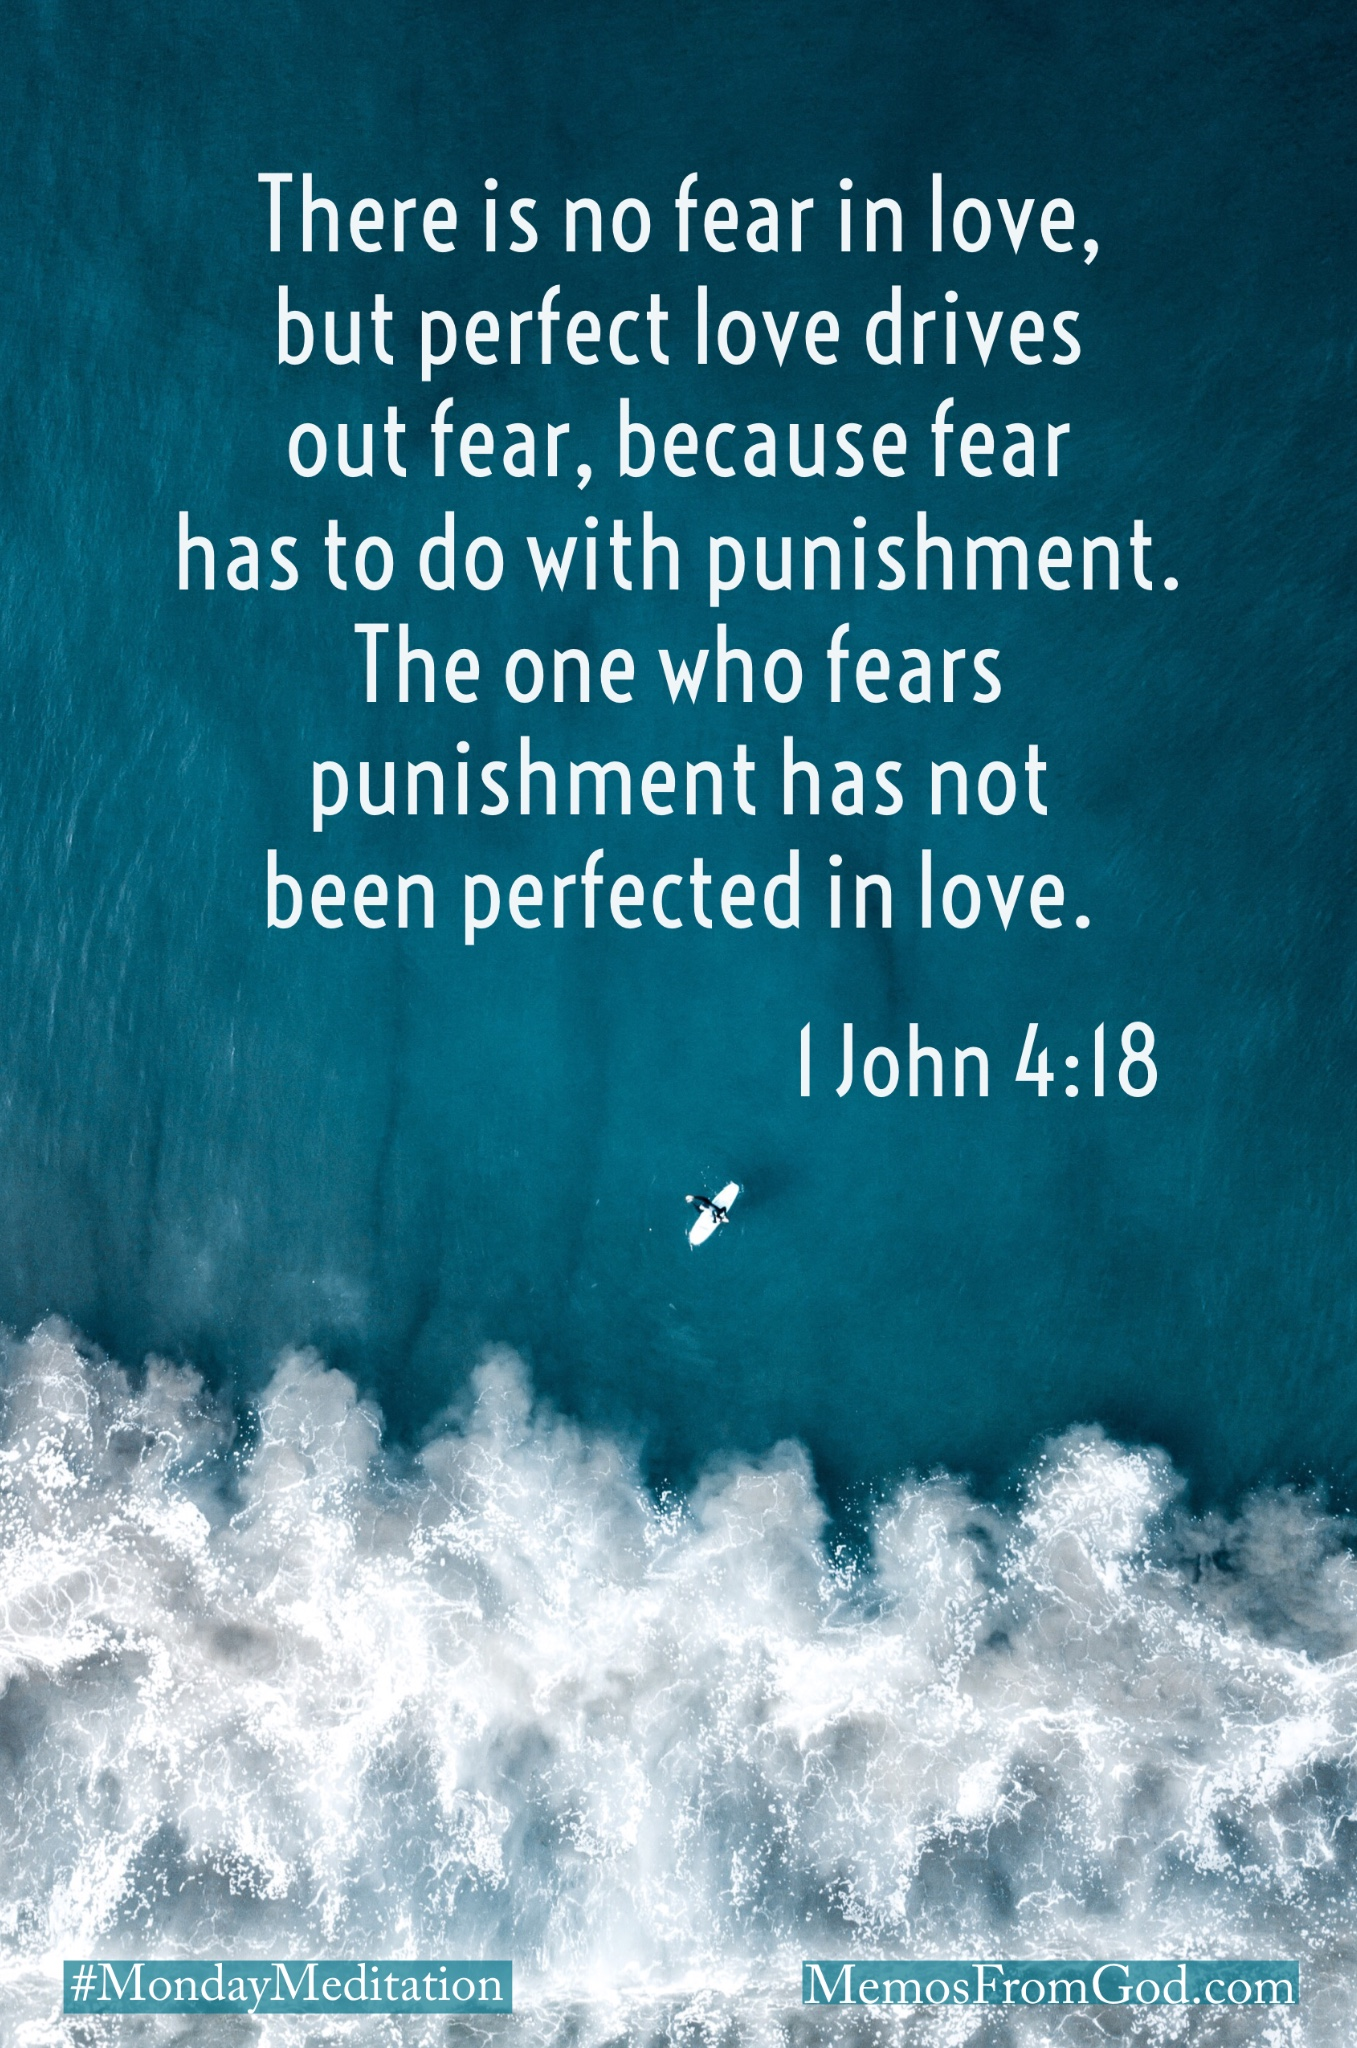 Deep turquoise water with white waves. Caption: There is no fear in love, but perfect love drives out fear, because fear has to do with punishment. The one who fears punishment has not been perfected in love. 1 John 4:18